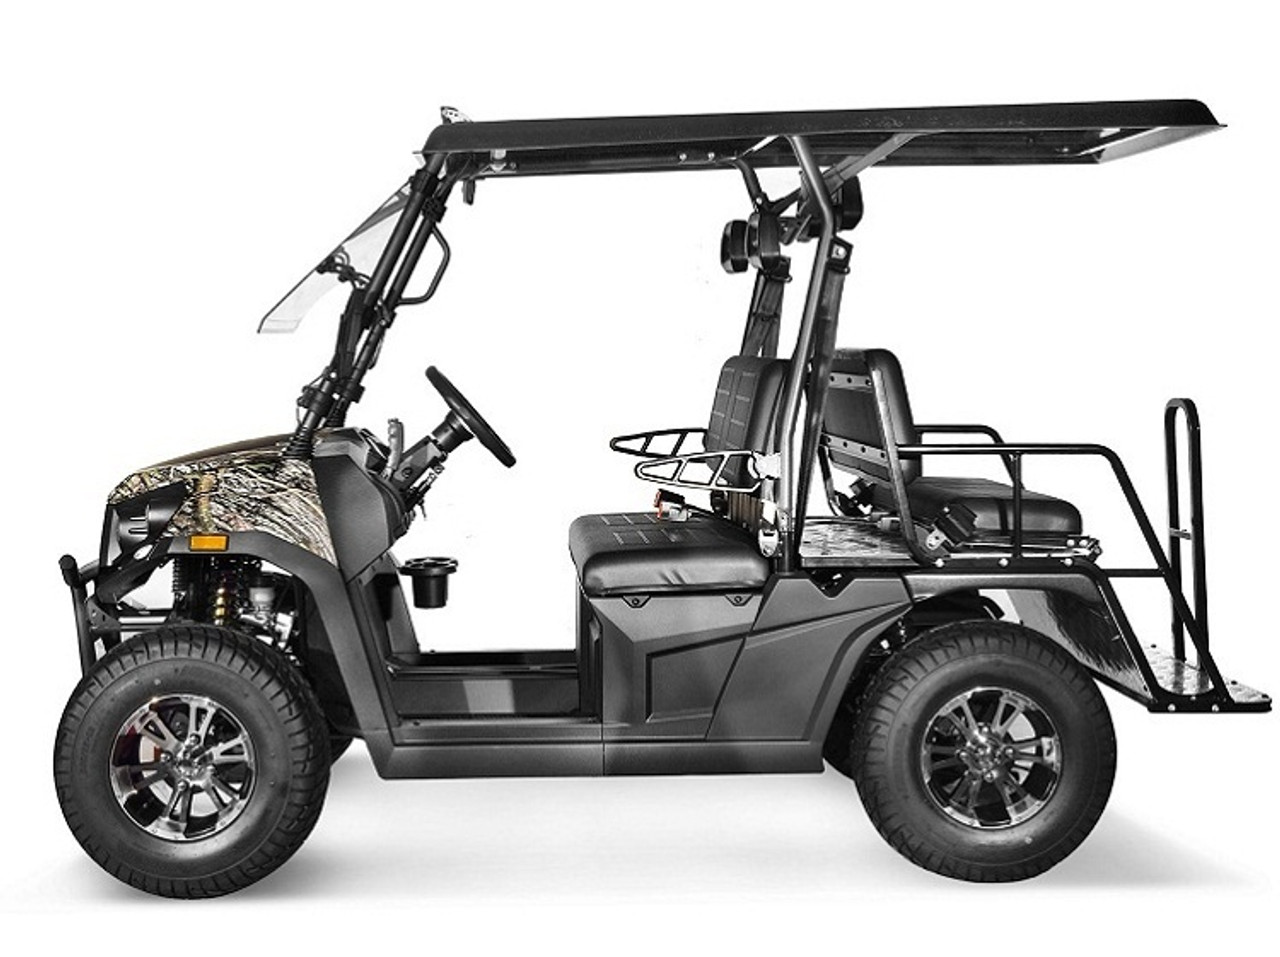 Tree Camo - Vitacci Rover-200 EFI 169cc (Golf Cart) UTV, 4-stroke, Single-cylinder, Oil-cooled - Fully Assembled and Tested